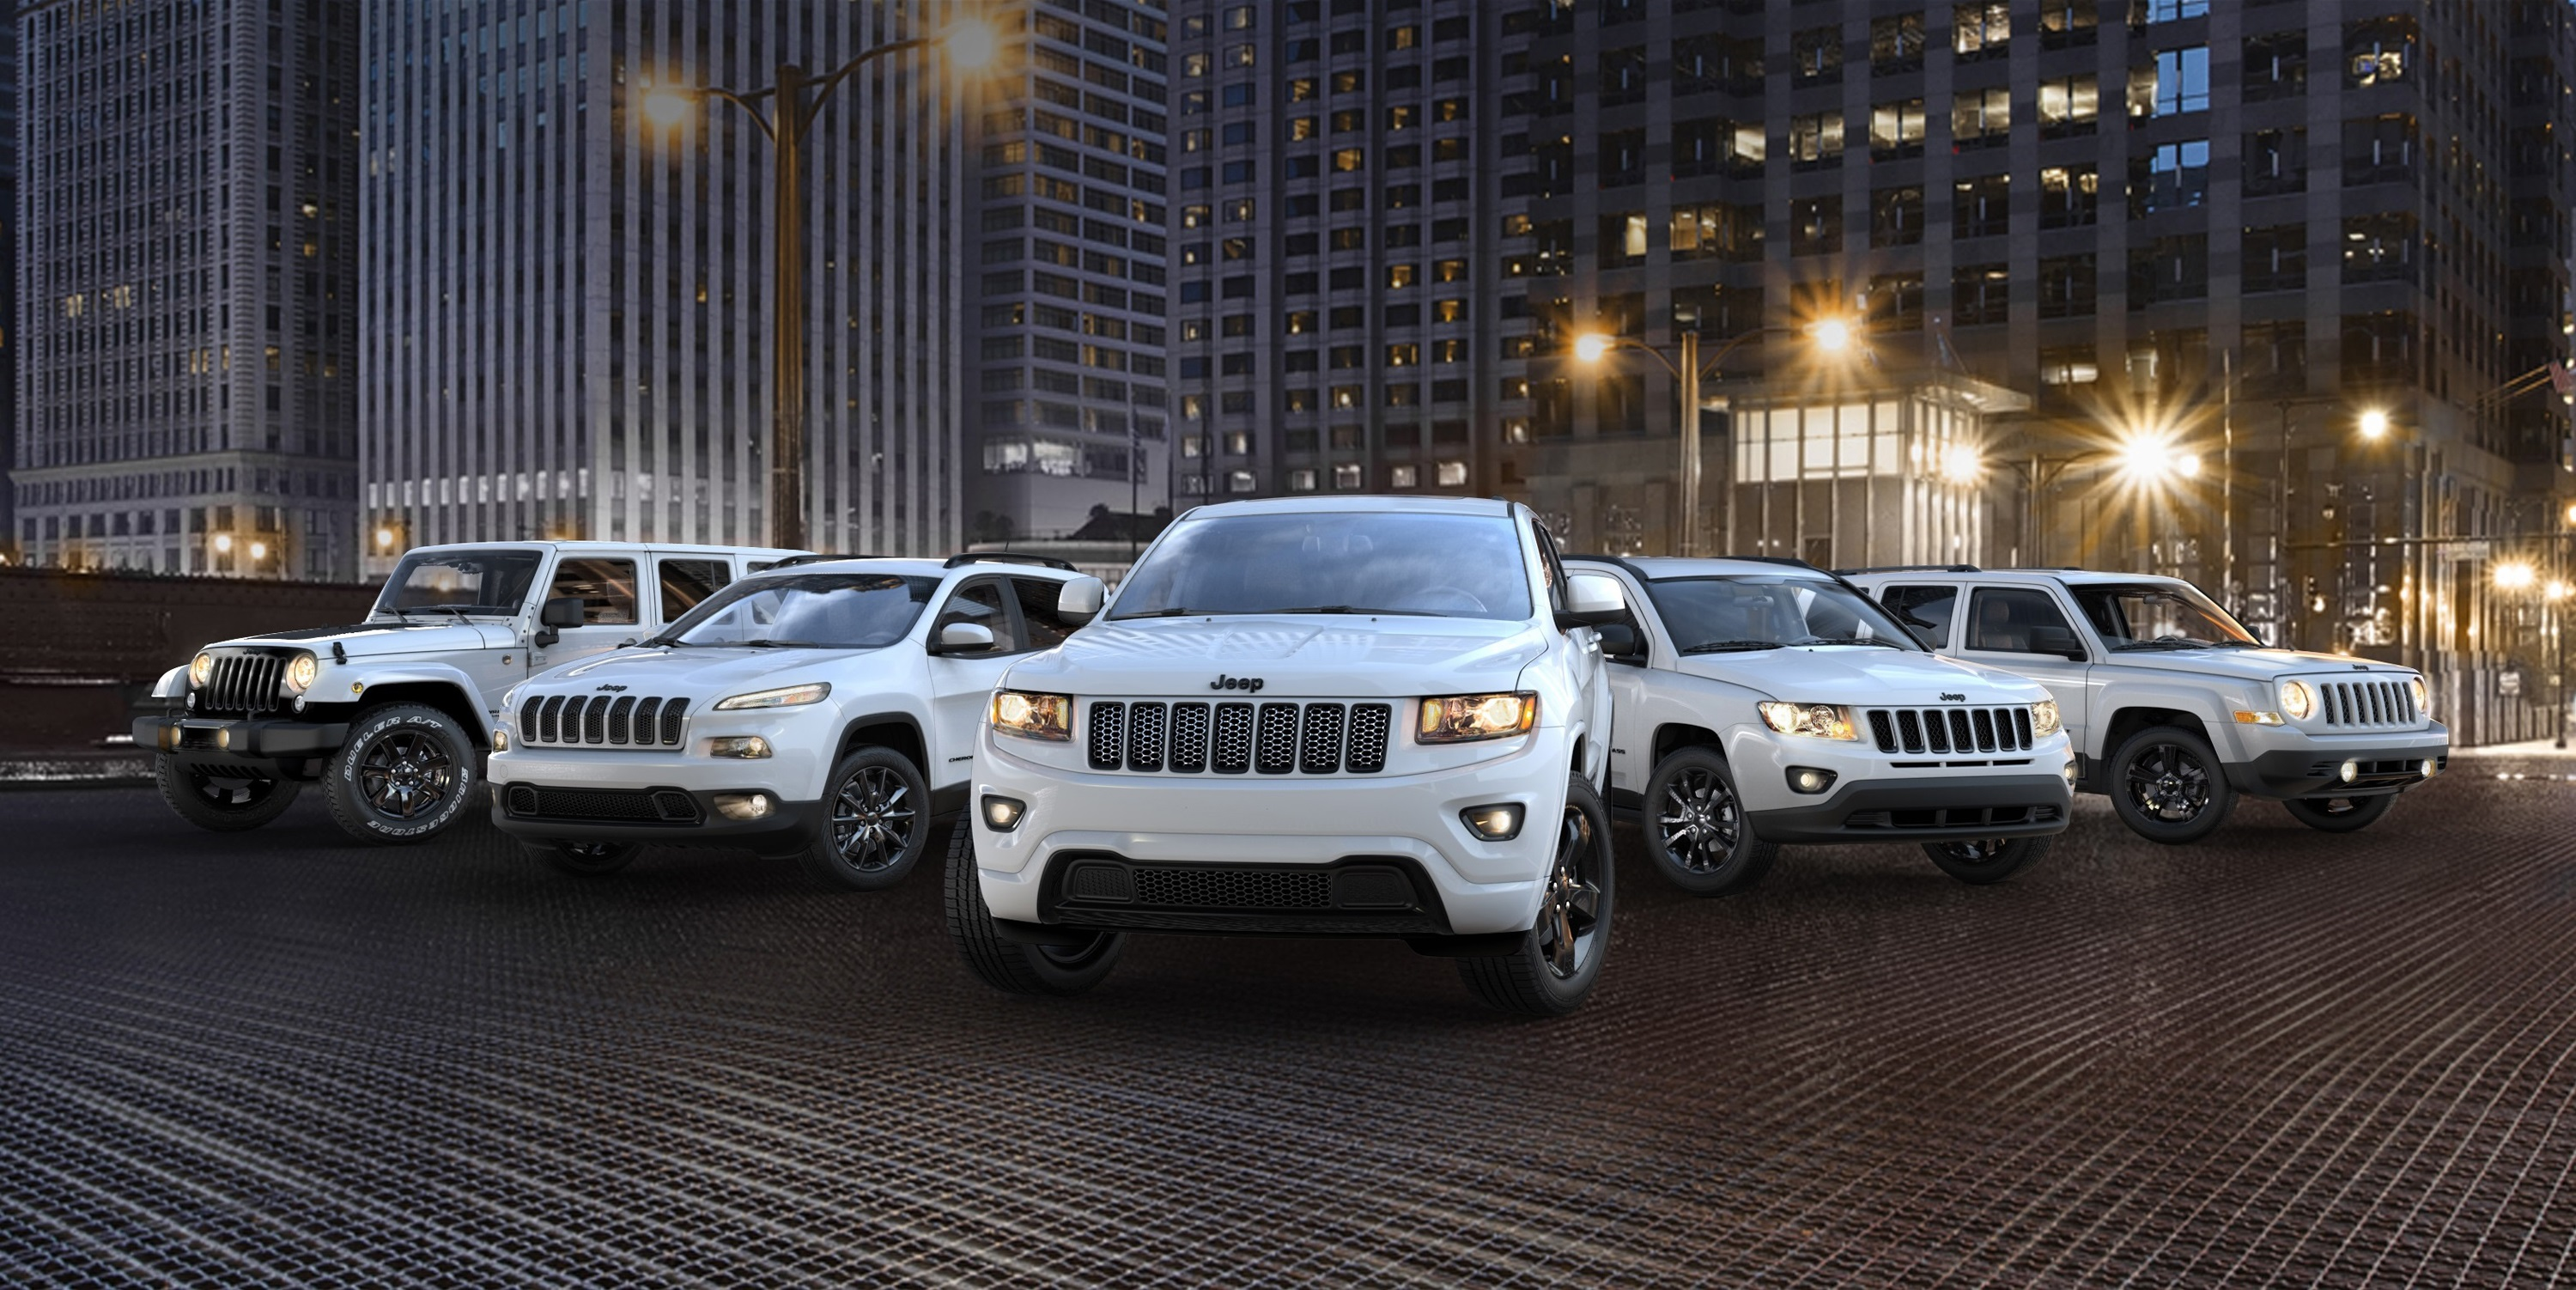 Jeep Altitude Models Returning For 2014 Rothrock Blog